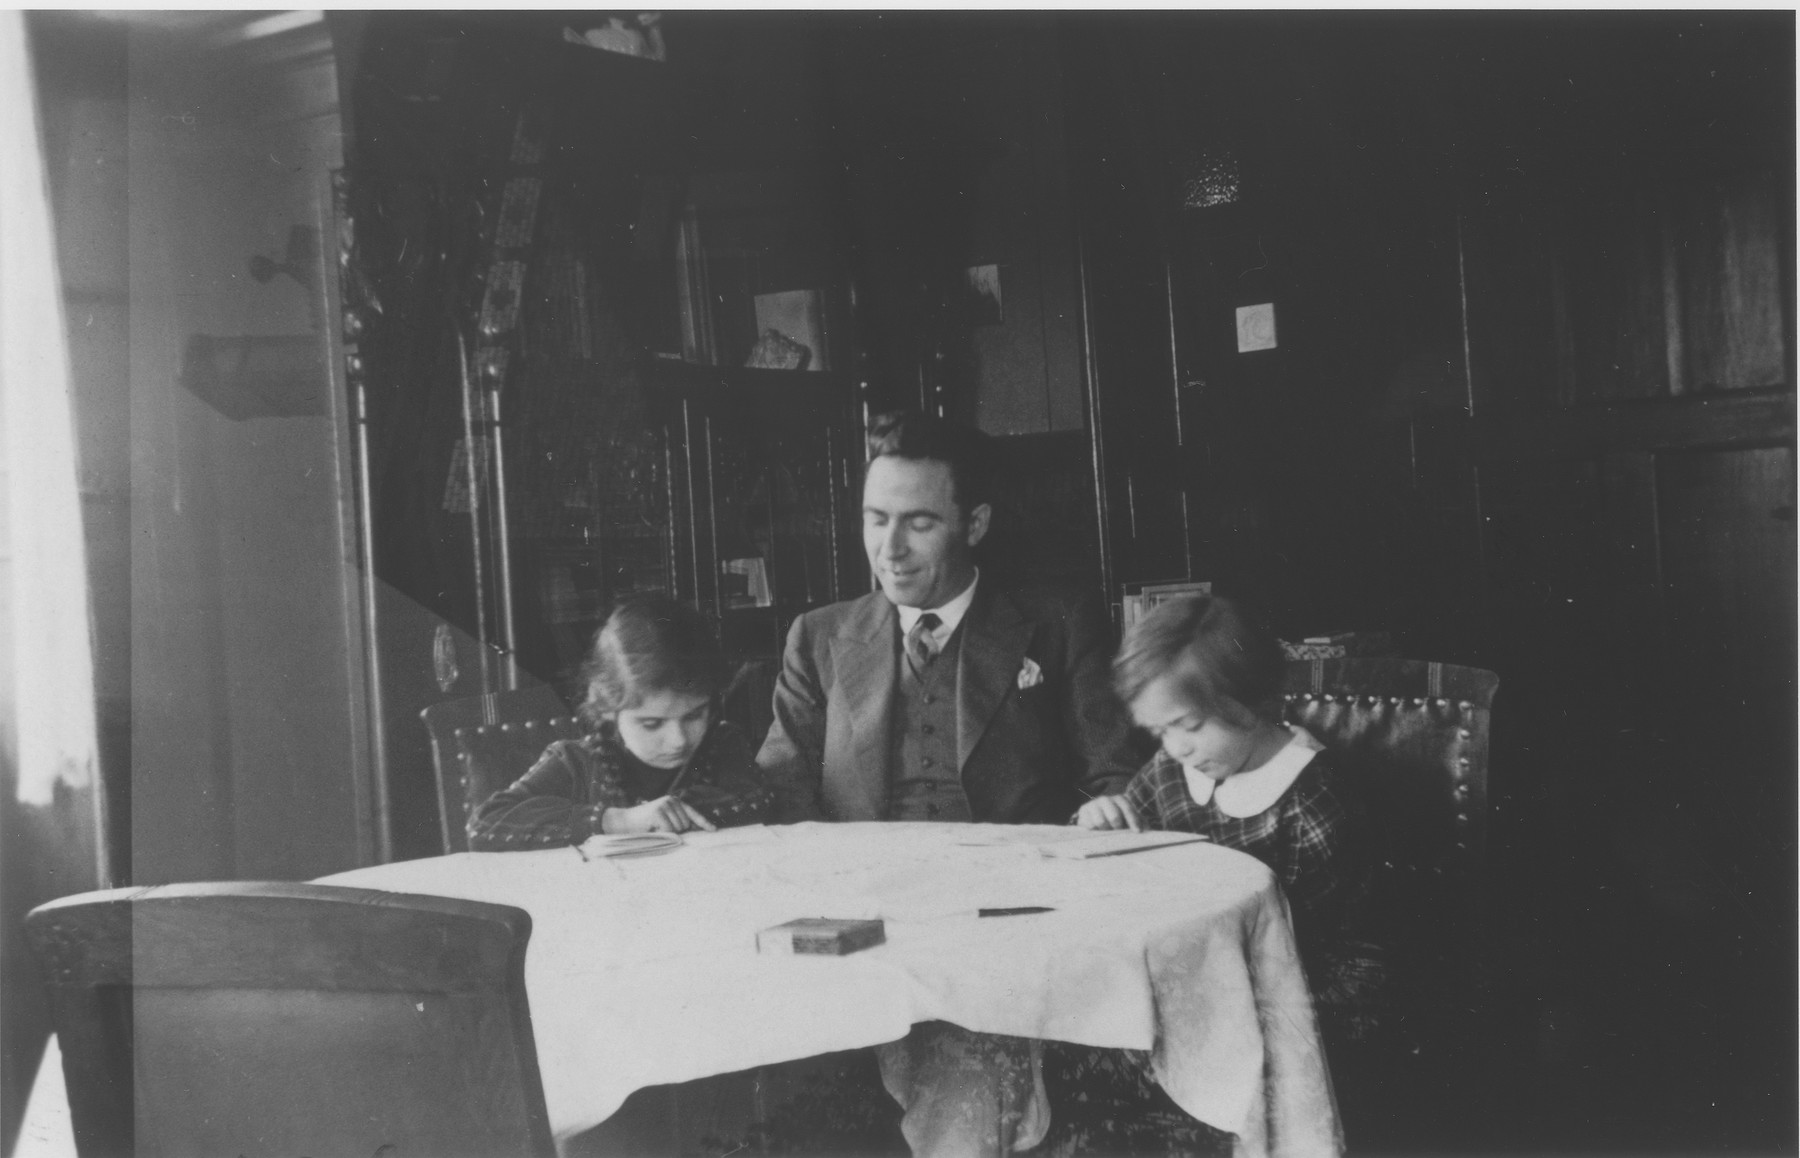 A Jewish religion teacher tutors two young girls in the dining room of a private home in Guntersblum, Germany.  Pictured from left to right are Ann Hellman, Carl Hartogsohn and Inge Seeman.